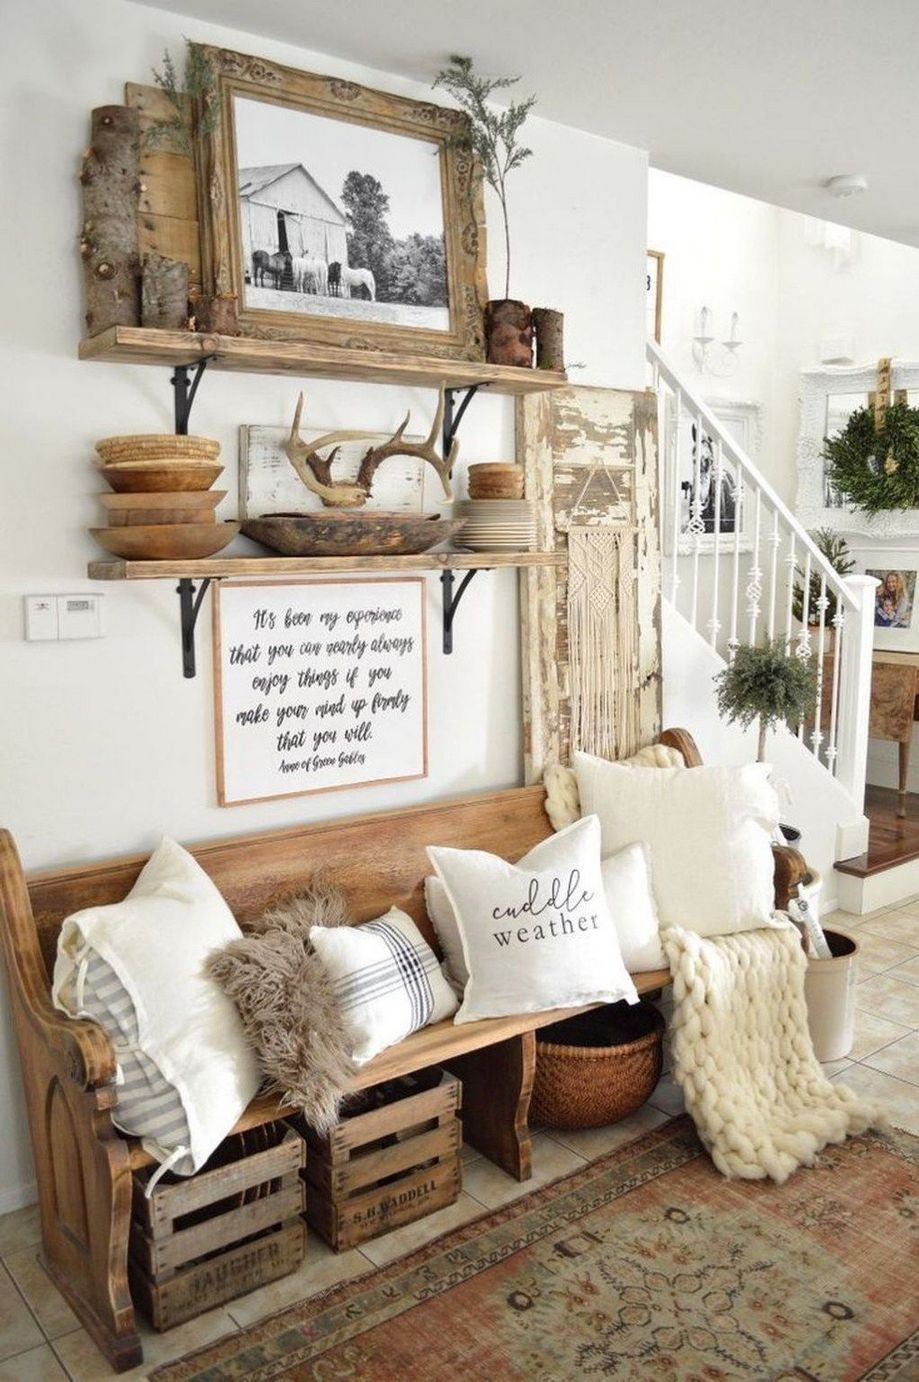 +28 Secrets To Home Decor Ideas Living Room Rustic Farmhouse Style 87 -  freehomeideas.